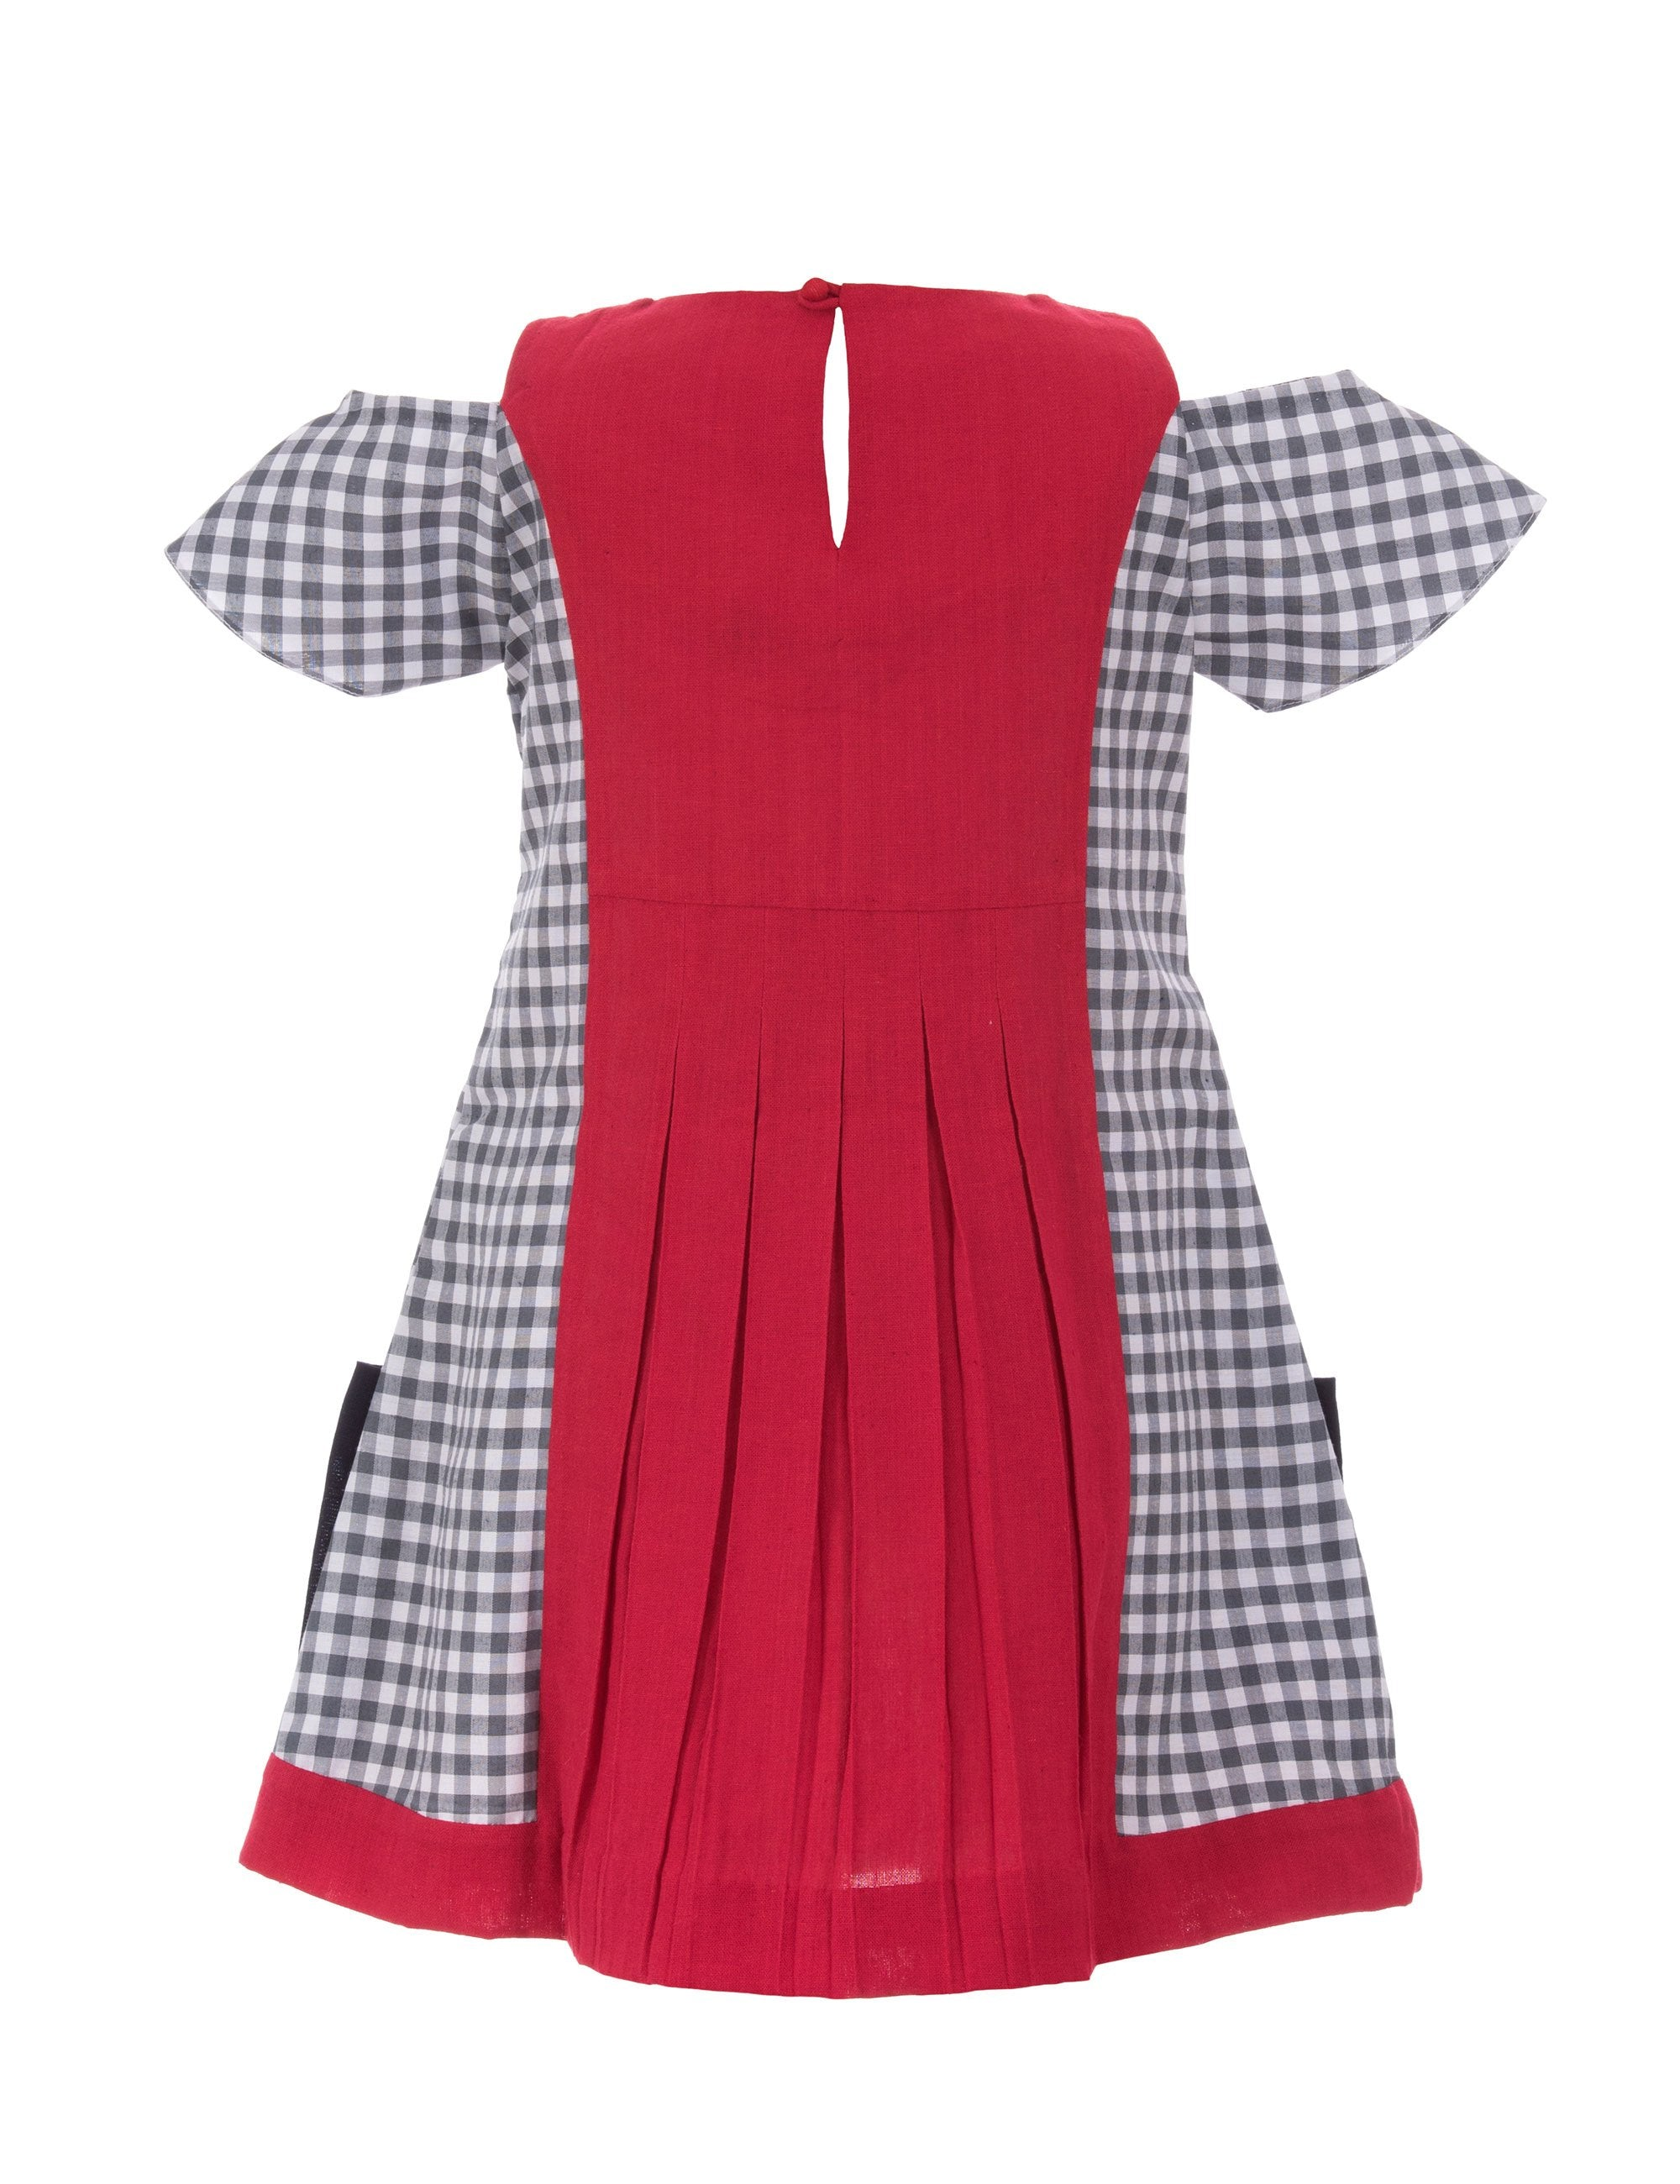 Cattitude Dress in Red for Girls